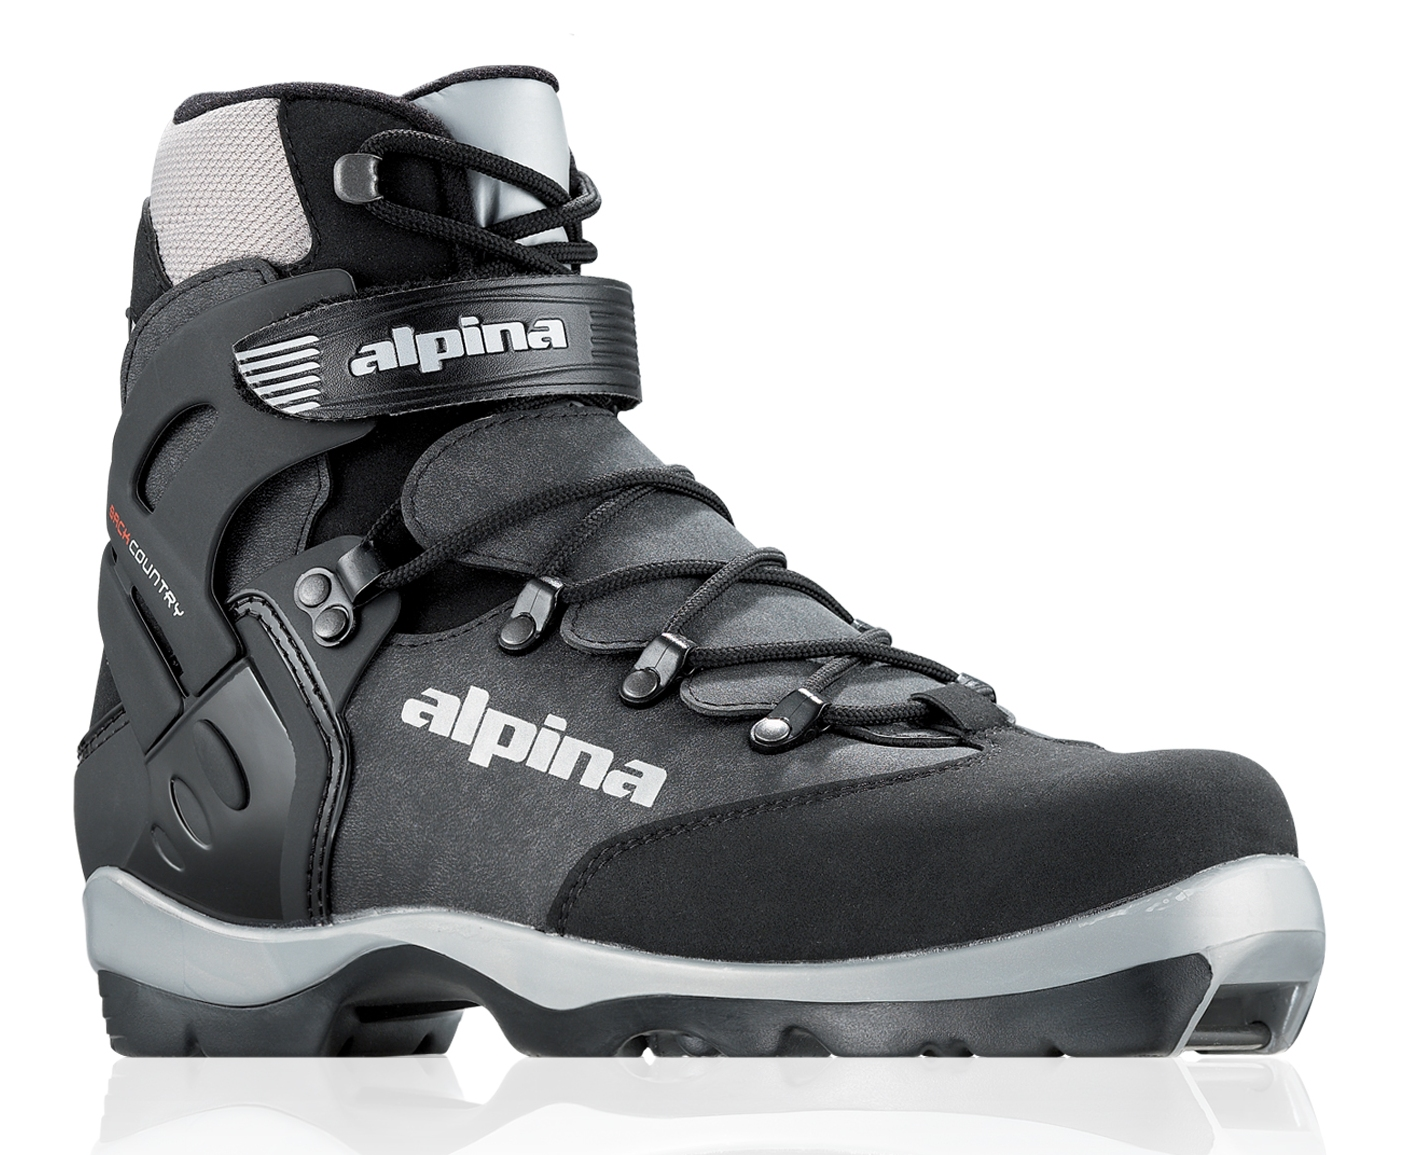 buty do nart backcountry Alpina BC-1550